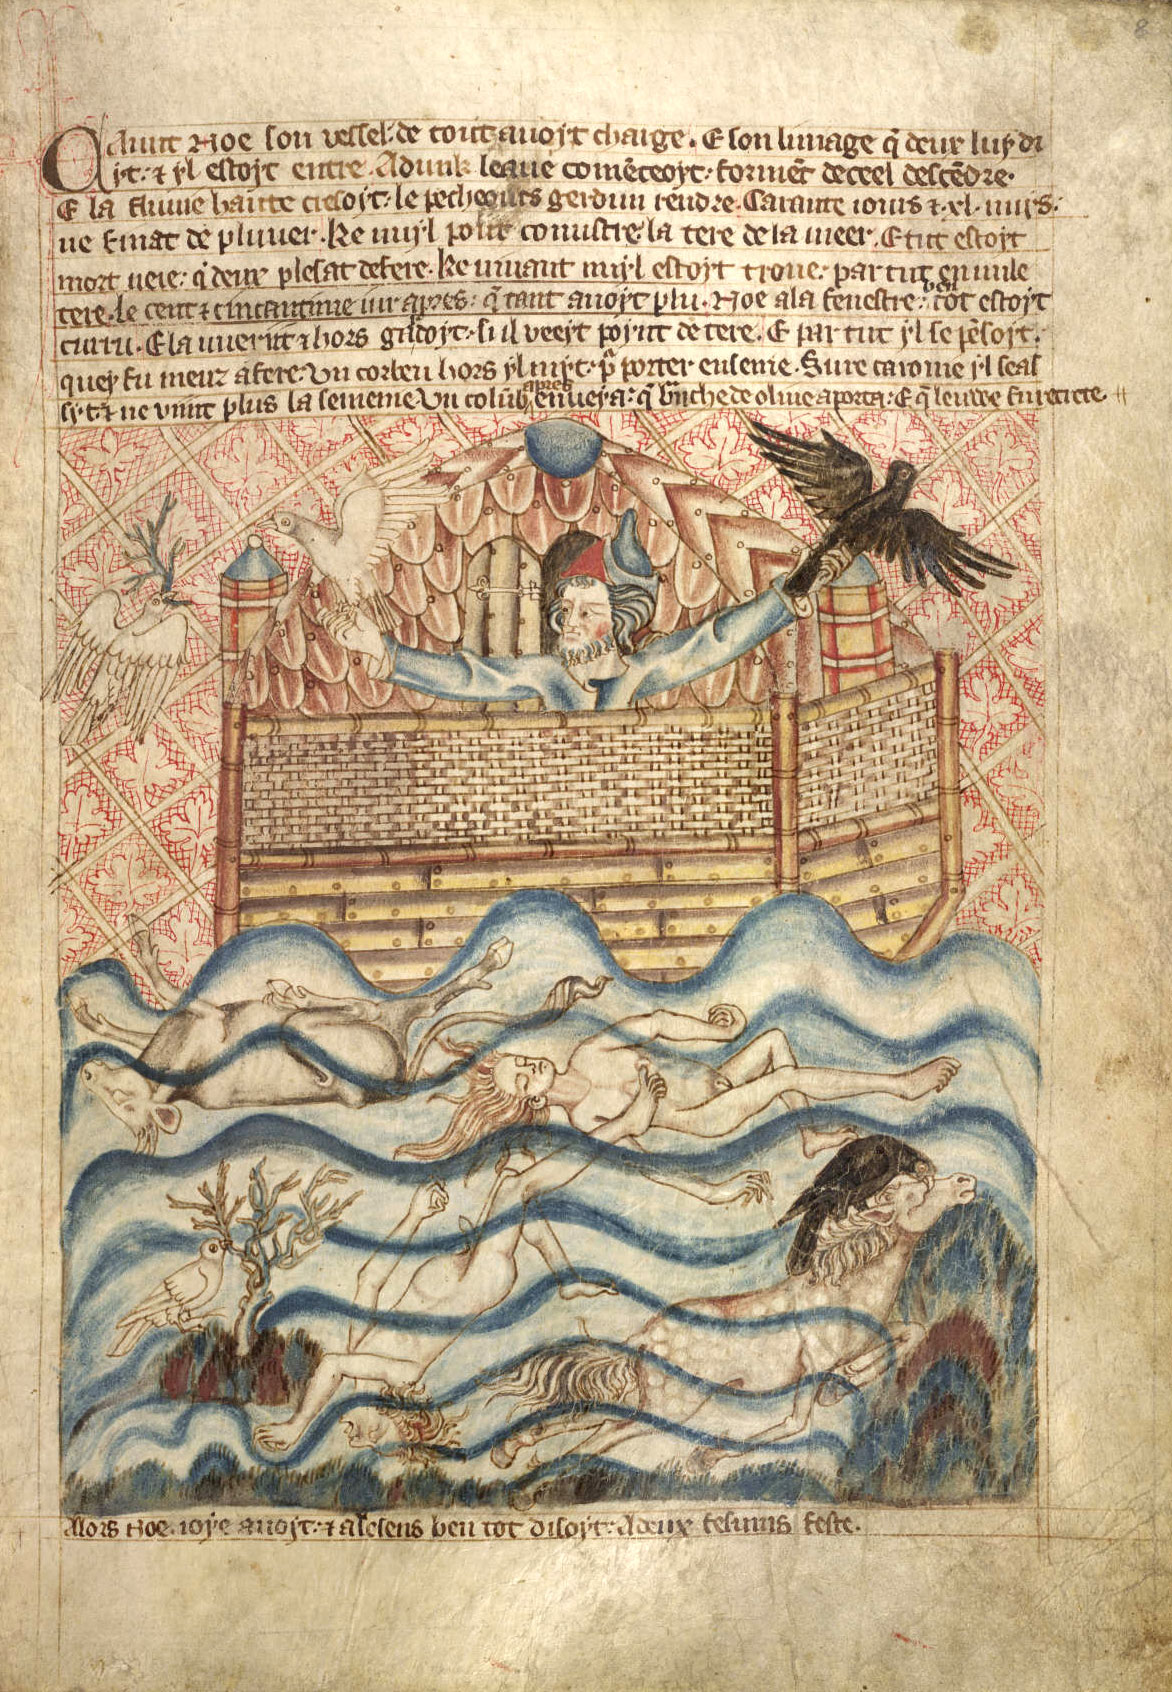 Noah in the Holkham Bible